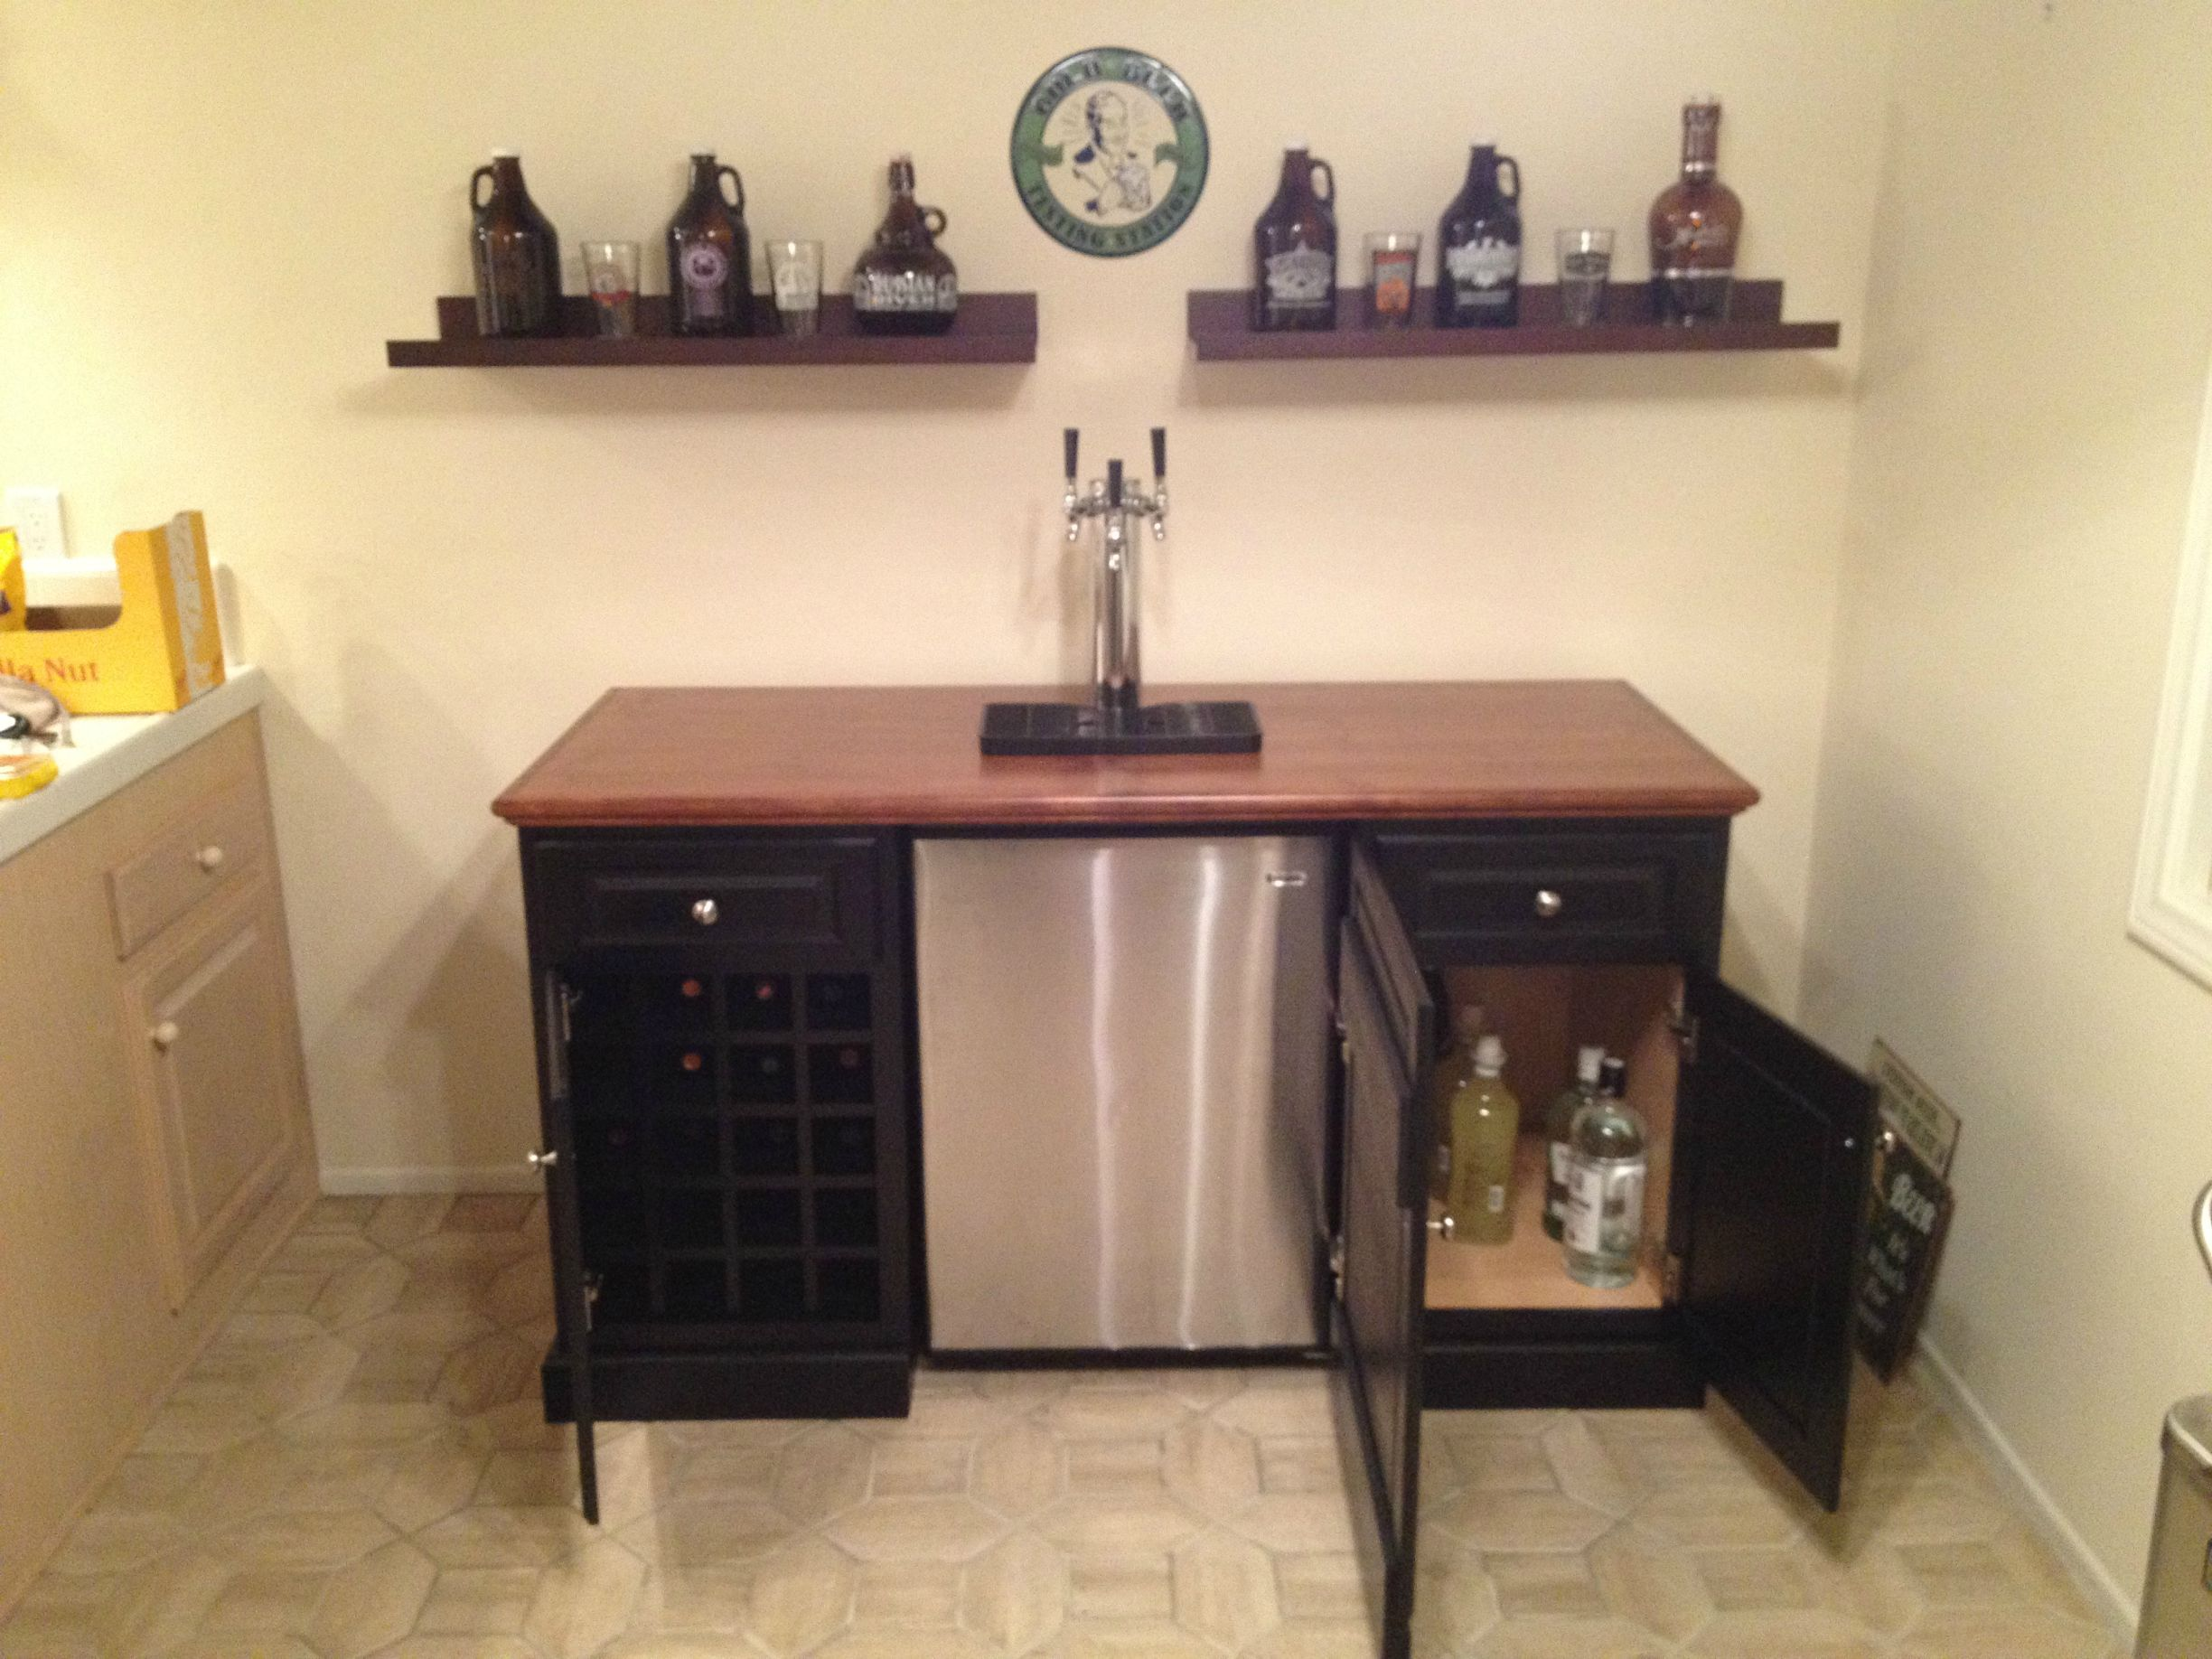 kegerator cabinet house and home pinterest bar areas bar hutch and mini fridge. Black Bedroom Furniture Sets. Home Design Ideas